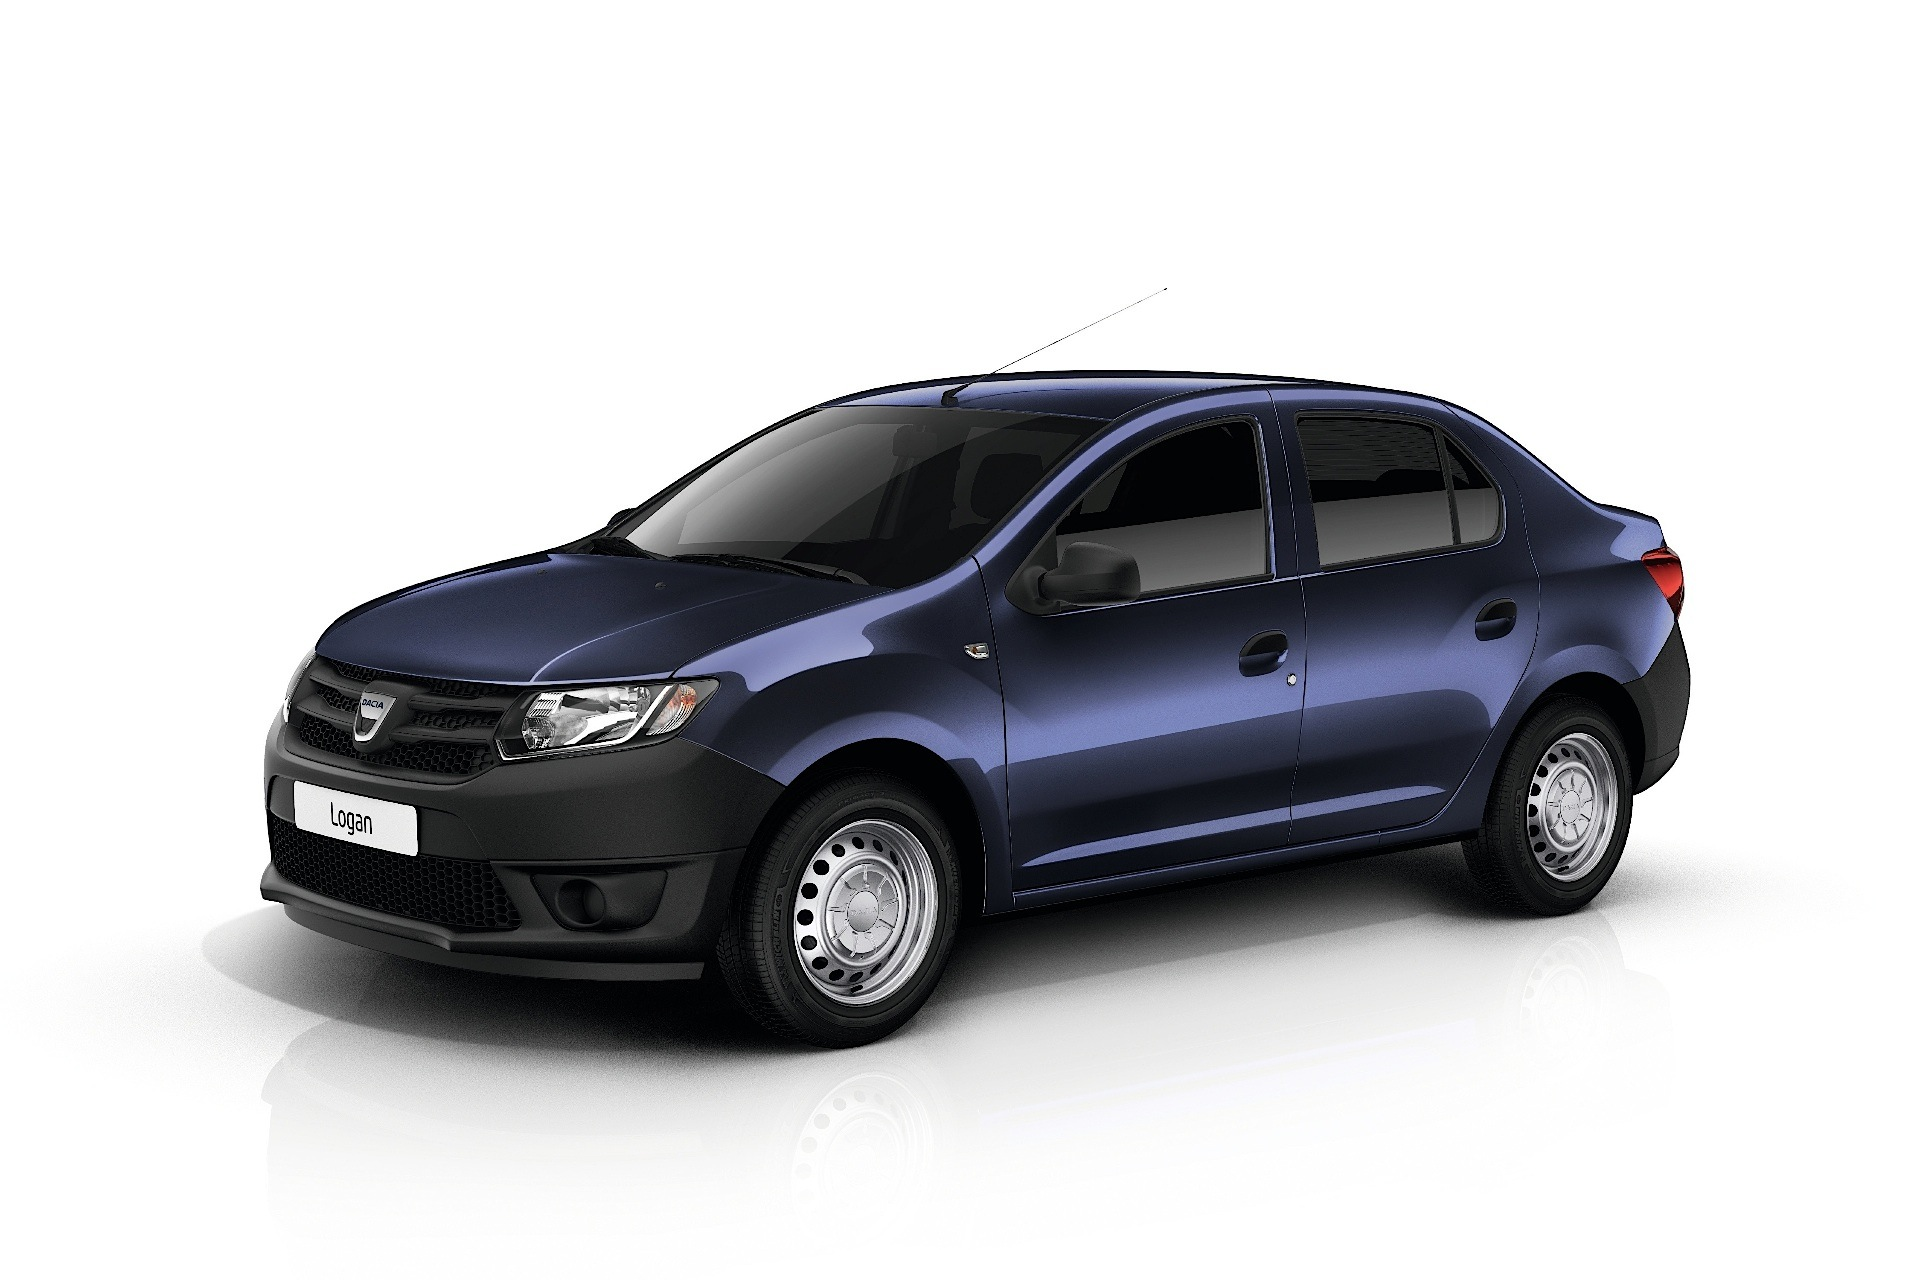 dacia logan 2 specs 2012 2013 2014 2015 2016 autoevolution. Black Bedroom Furniture Sets. Home Design Ideas